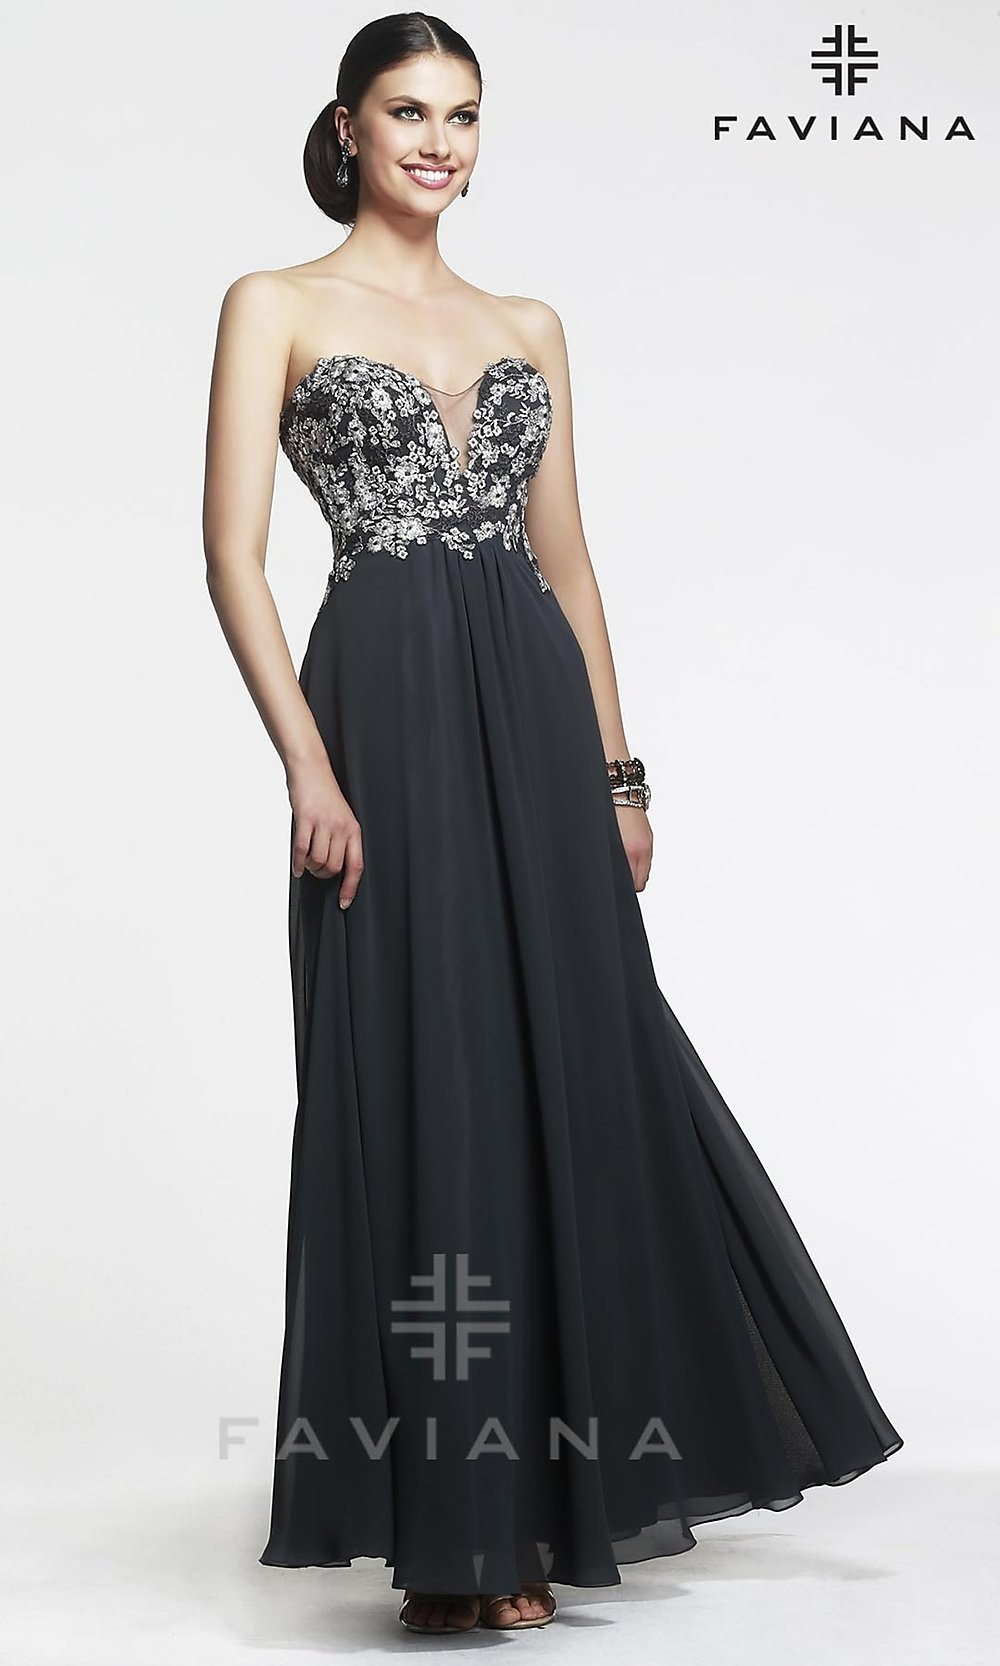 Strapless Low Cut Prom Dresses, Faviana Strapless Gowns- PromGirl